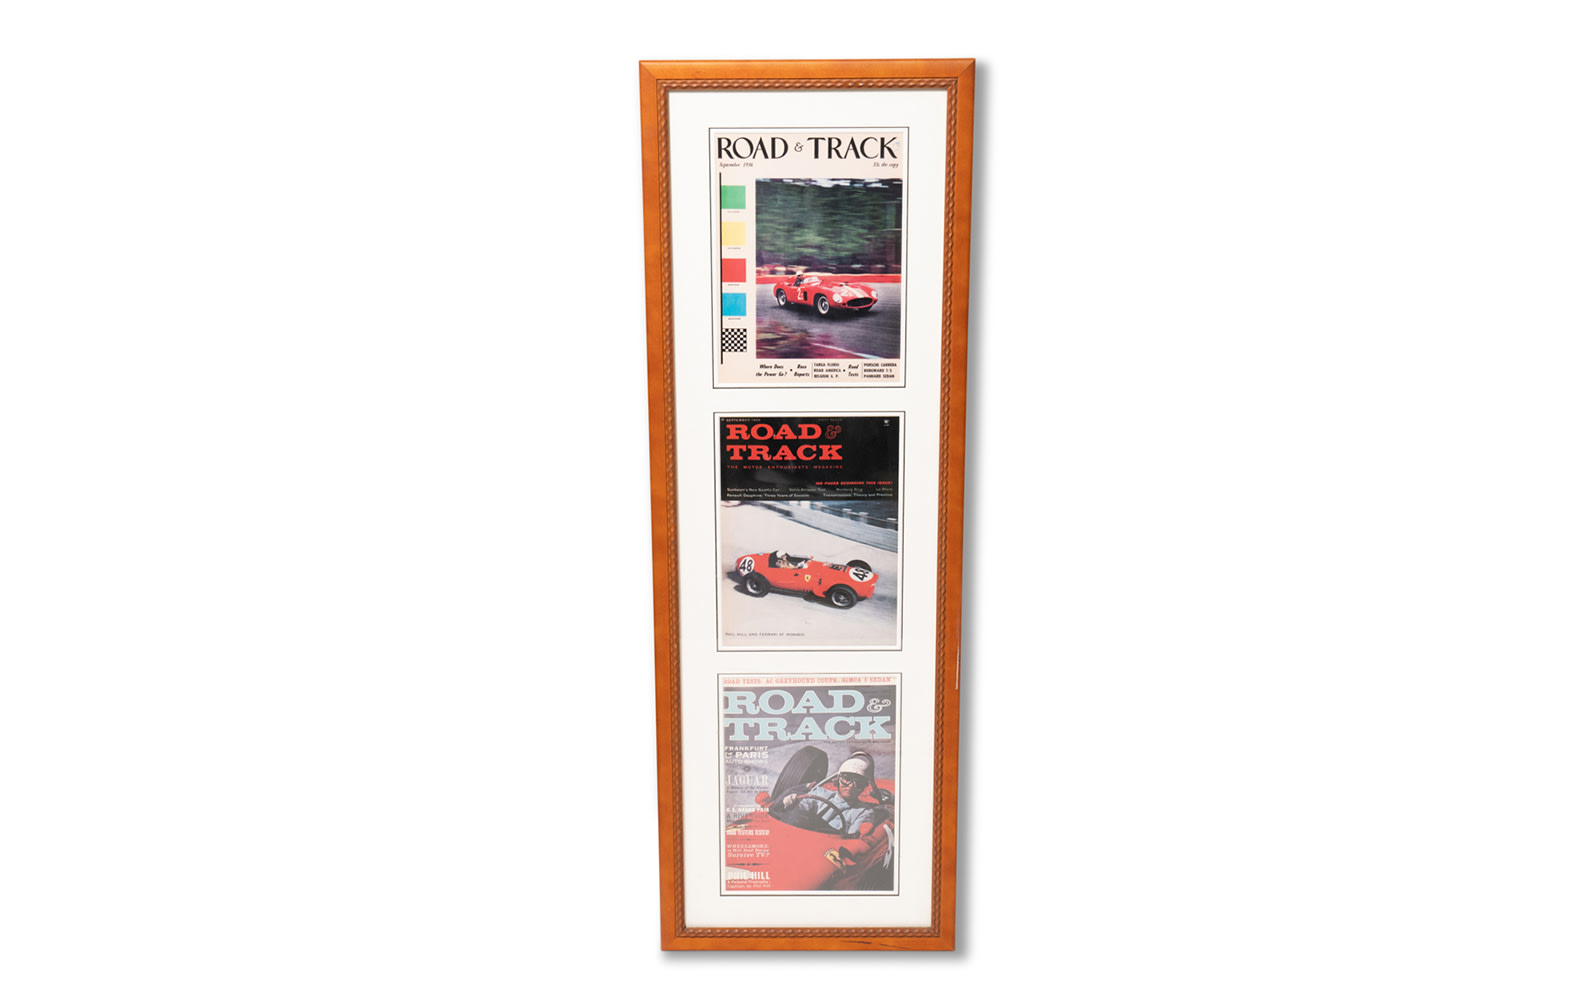 Road & Track Magazine Covers Featuring Phil Hill Driving Ferraris, Framed